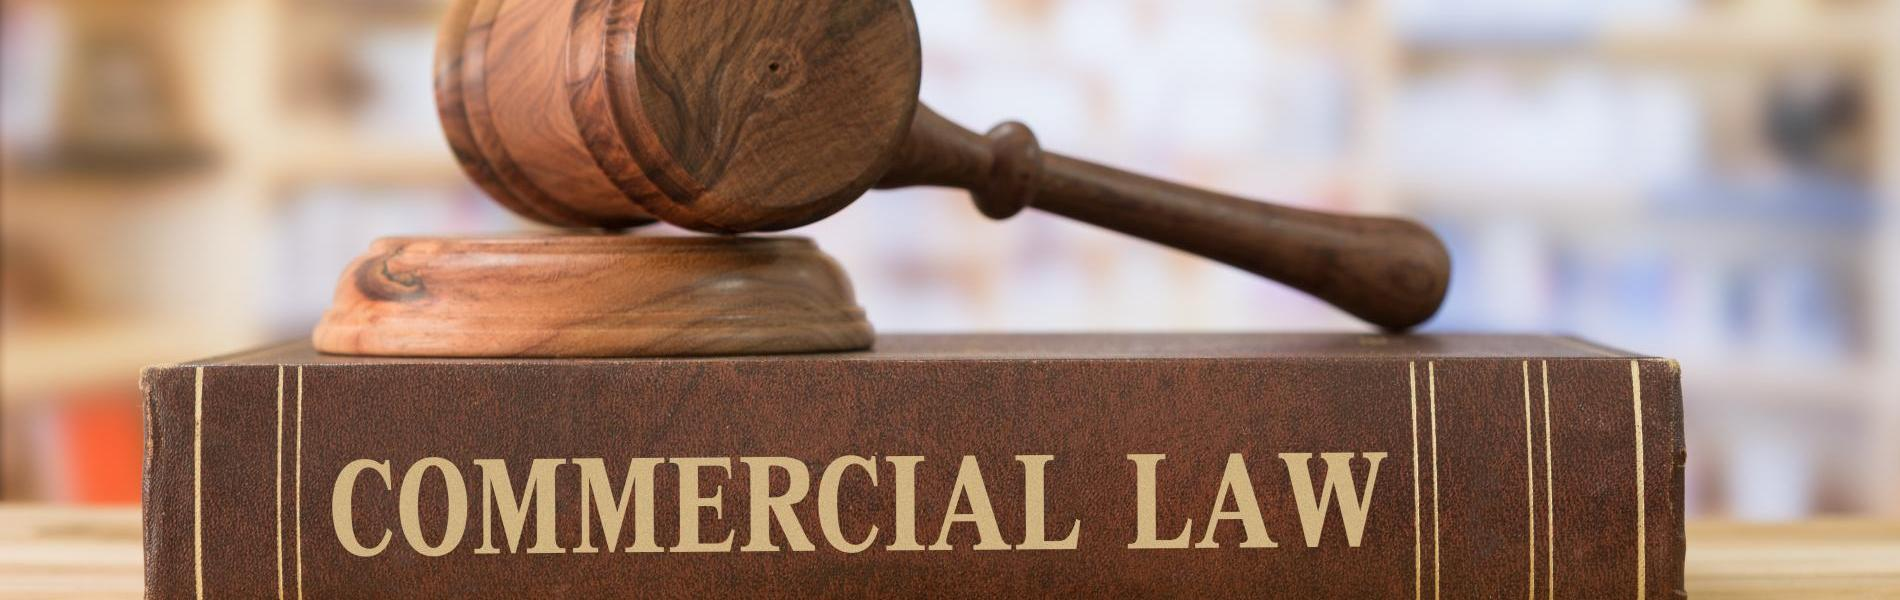 commericial law The term commercial law describes a wide body of laws that govern business transactions the primary authority that governs commercial transactions is the uniform commercial code (ucc) by definition, commercial contracts represent a combination of commercial and legal factors.